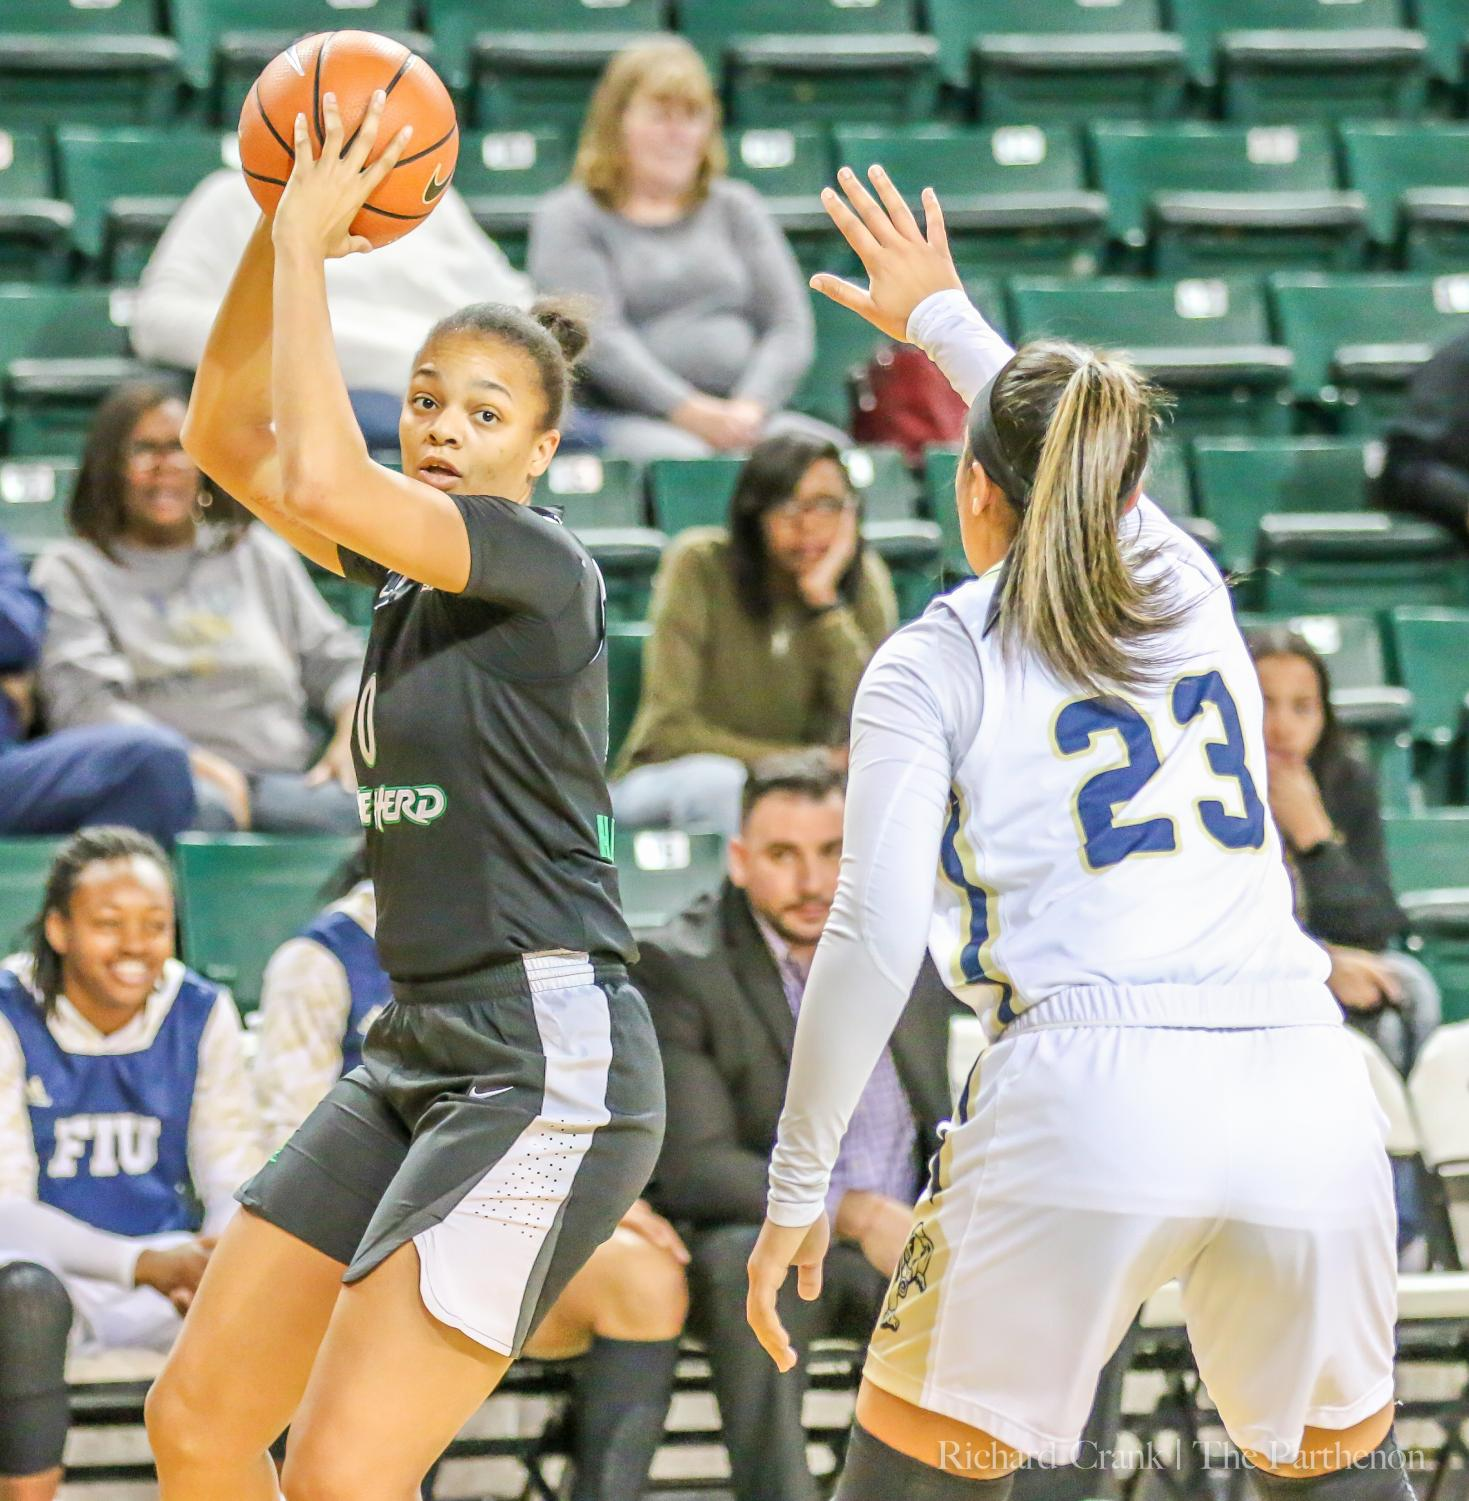 Talequia Hamilton fends off an opposing player during the Herd's home games against FIU Jan. 28.